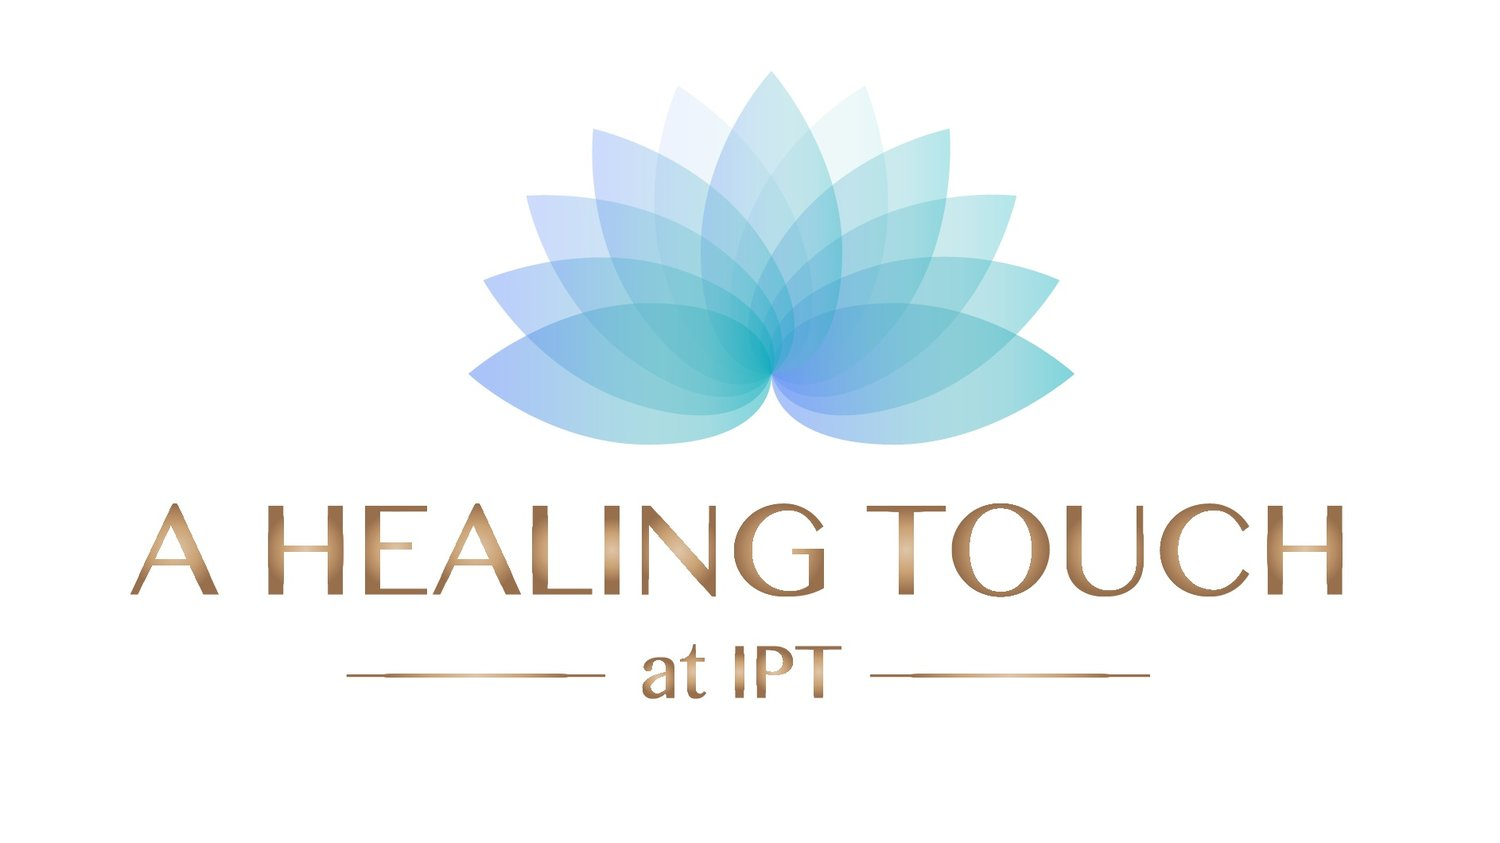 A Healing Touch at IPT | Natural and Organic Spa & Salon Services | Howell, NJ